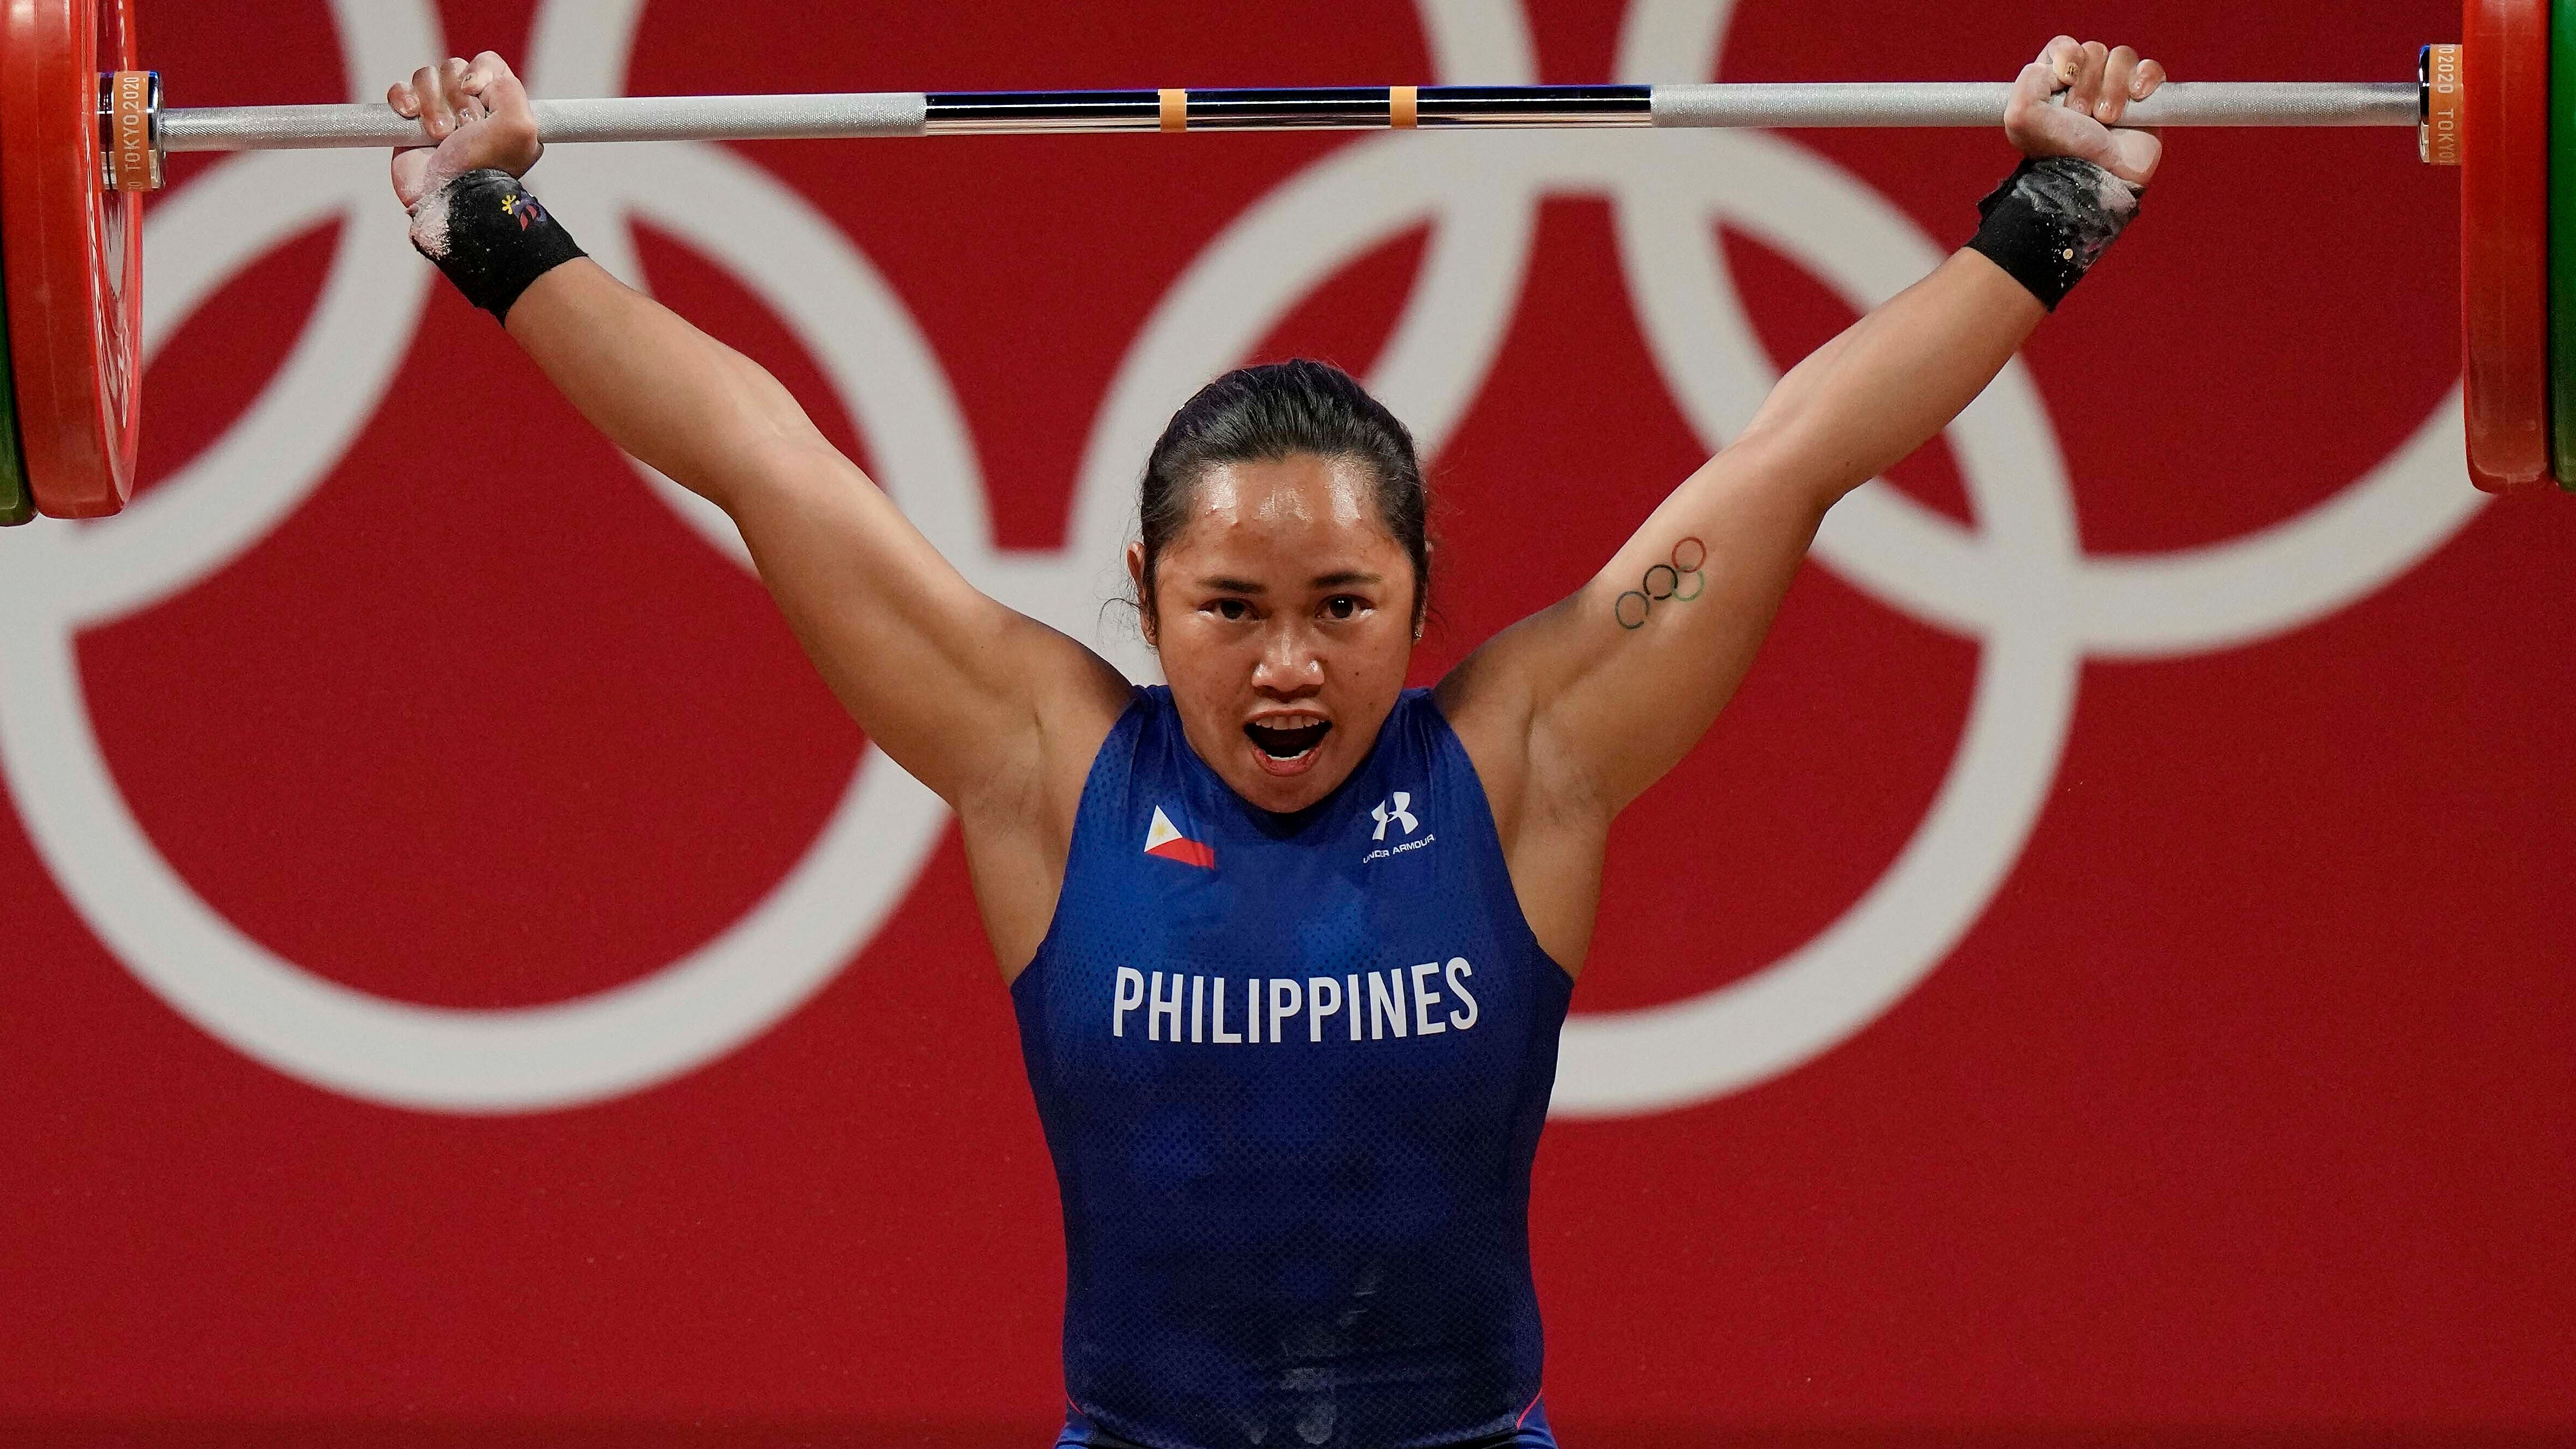 Weightlifter Hidilyn Diaz wins Philippines  first Olympic gold medal, 2 houses and $660,000